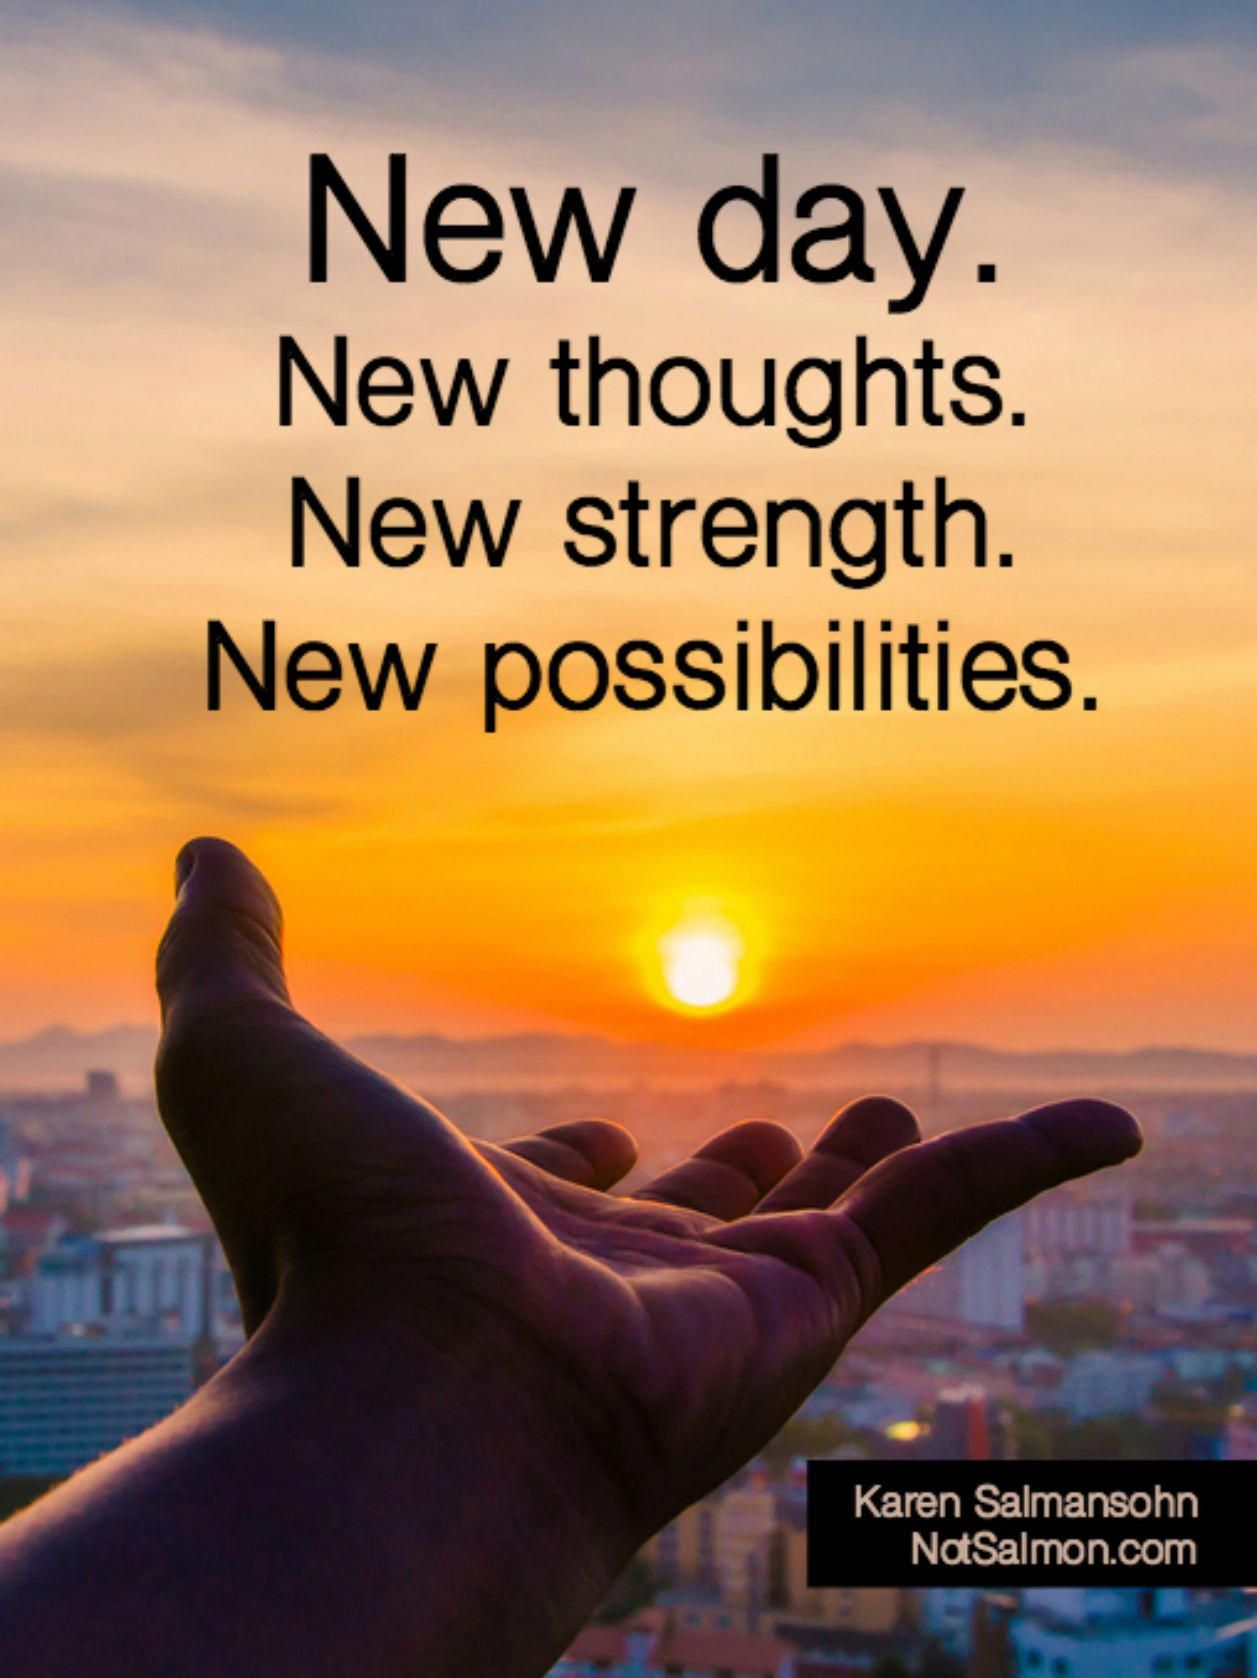 New Day Quotes : quotes, Thoughts., Strength., Possibilities., #quotes, #happiness, #life, #lifequotes, #inspiratio…, Quotes,, Morning, Quotes